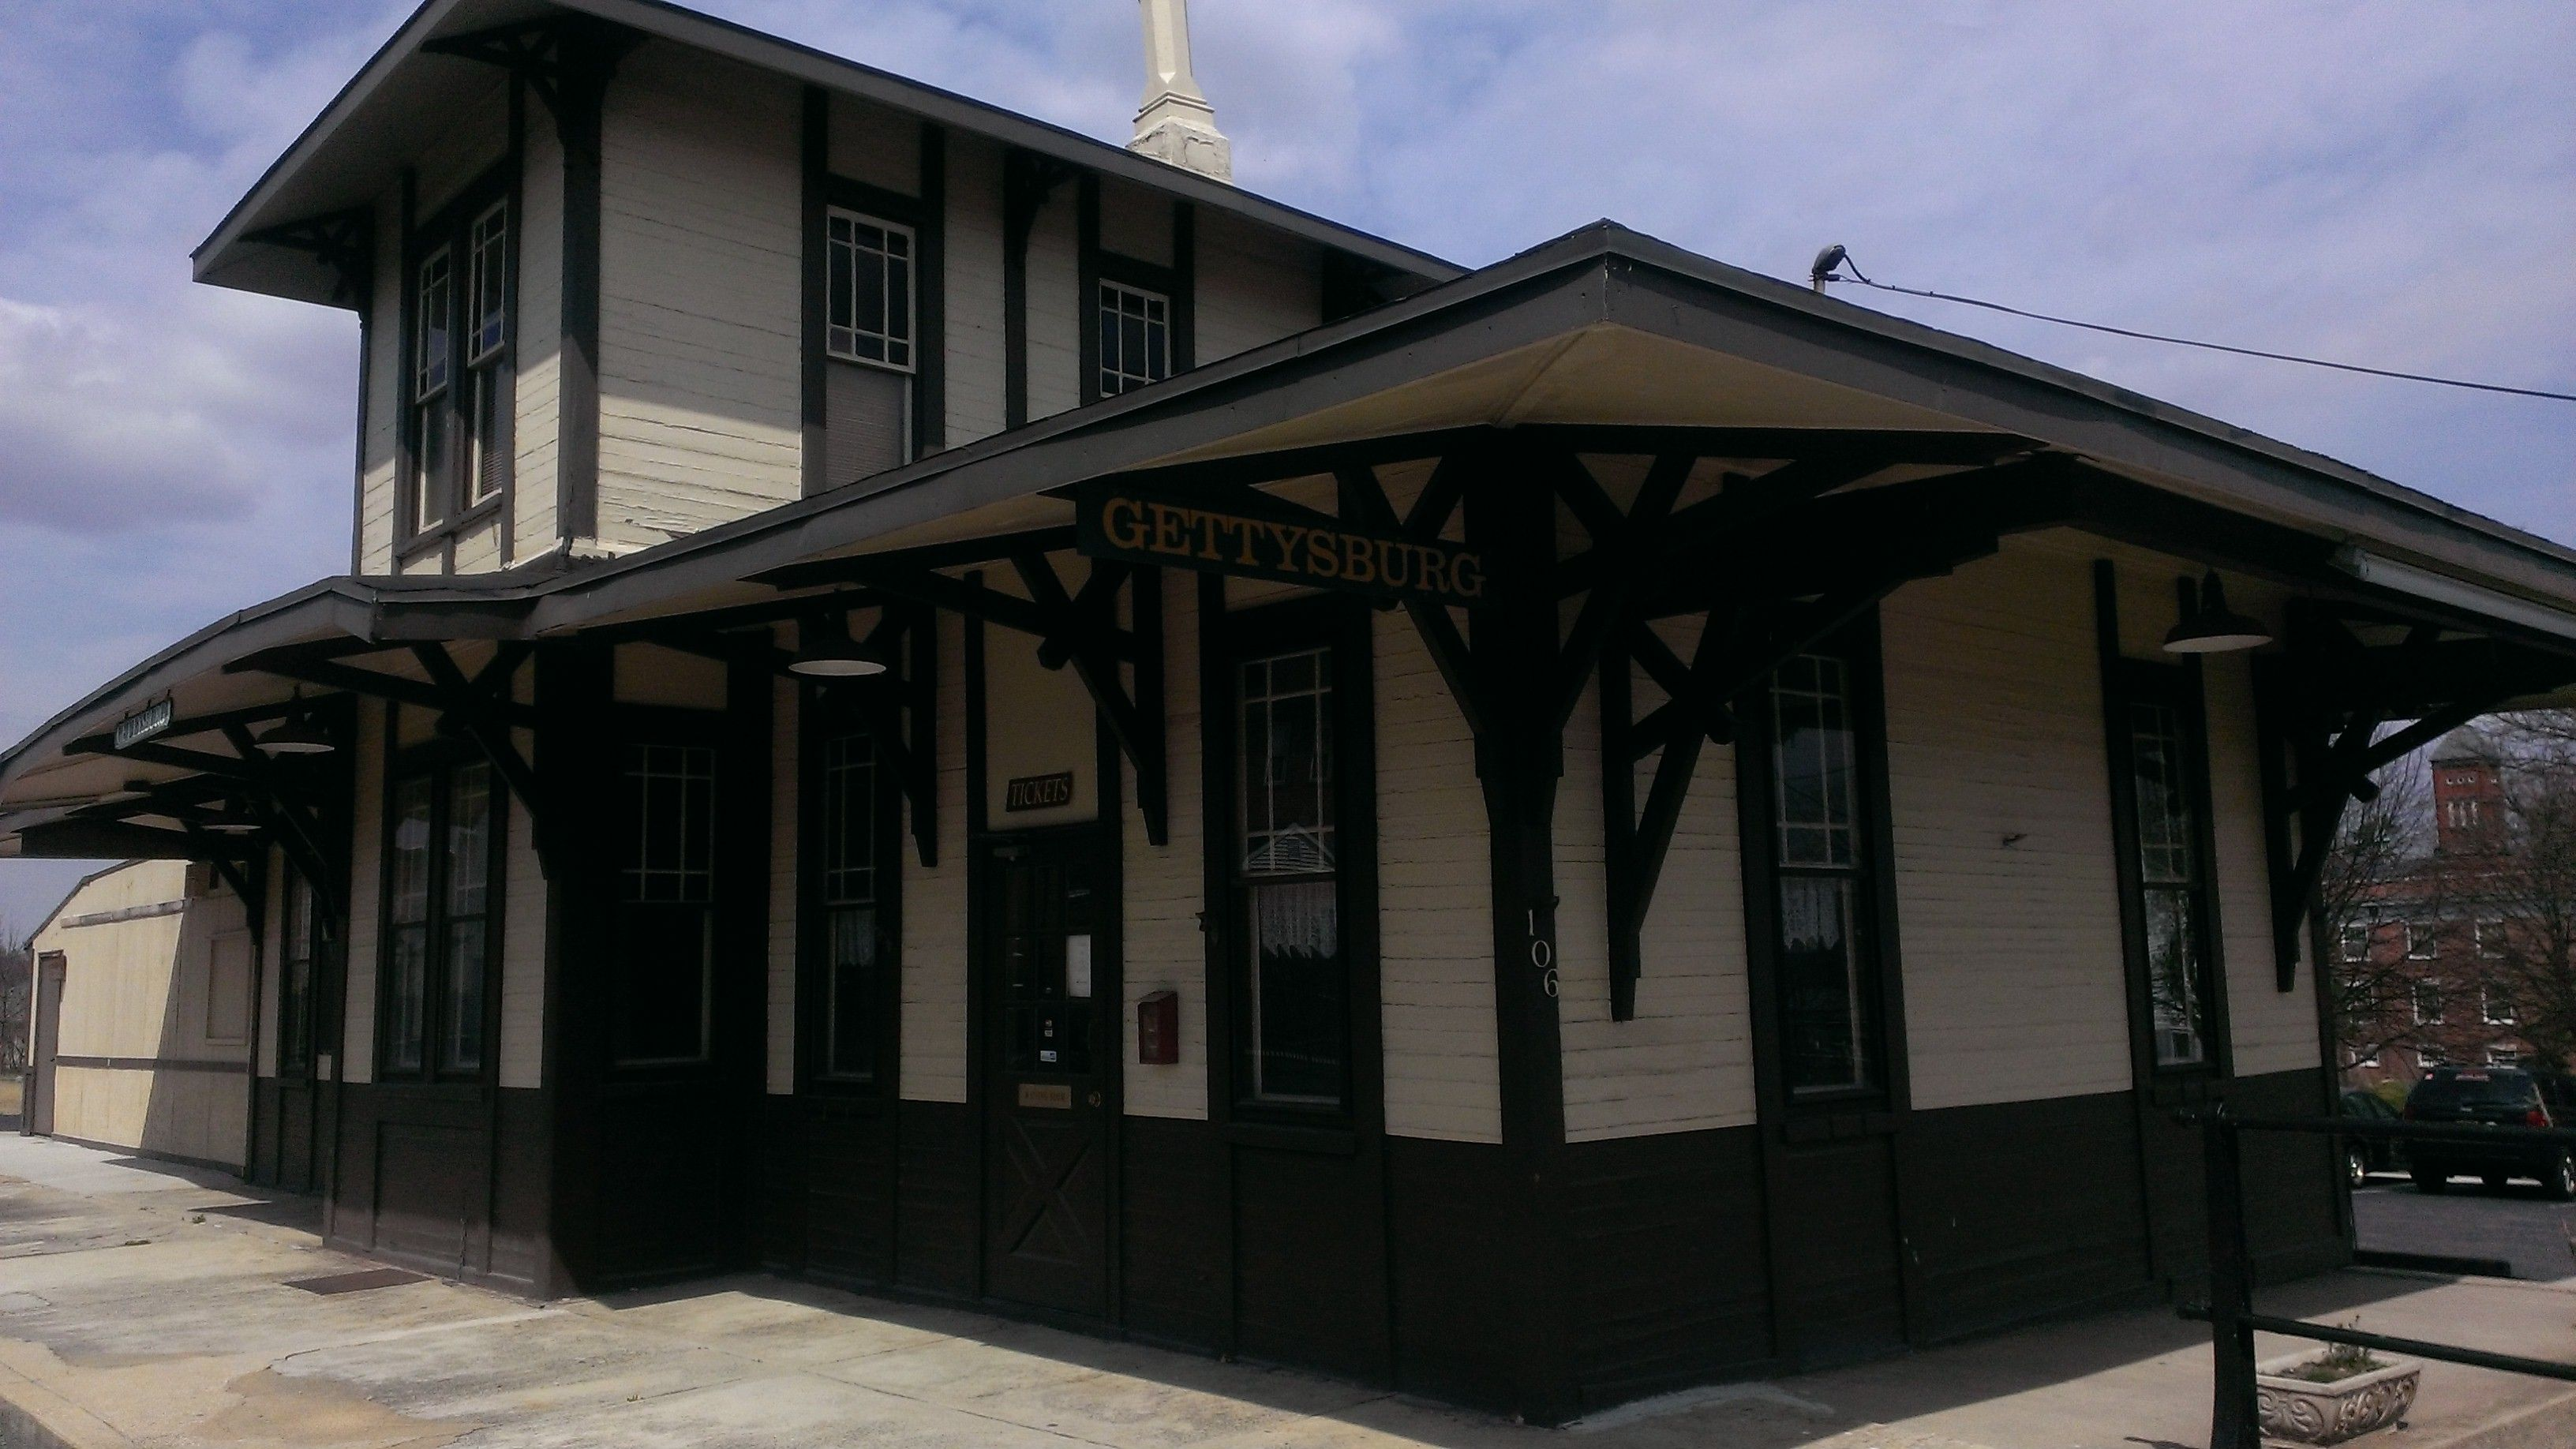 Train Station in Gettysburg Pennsylvania (With images